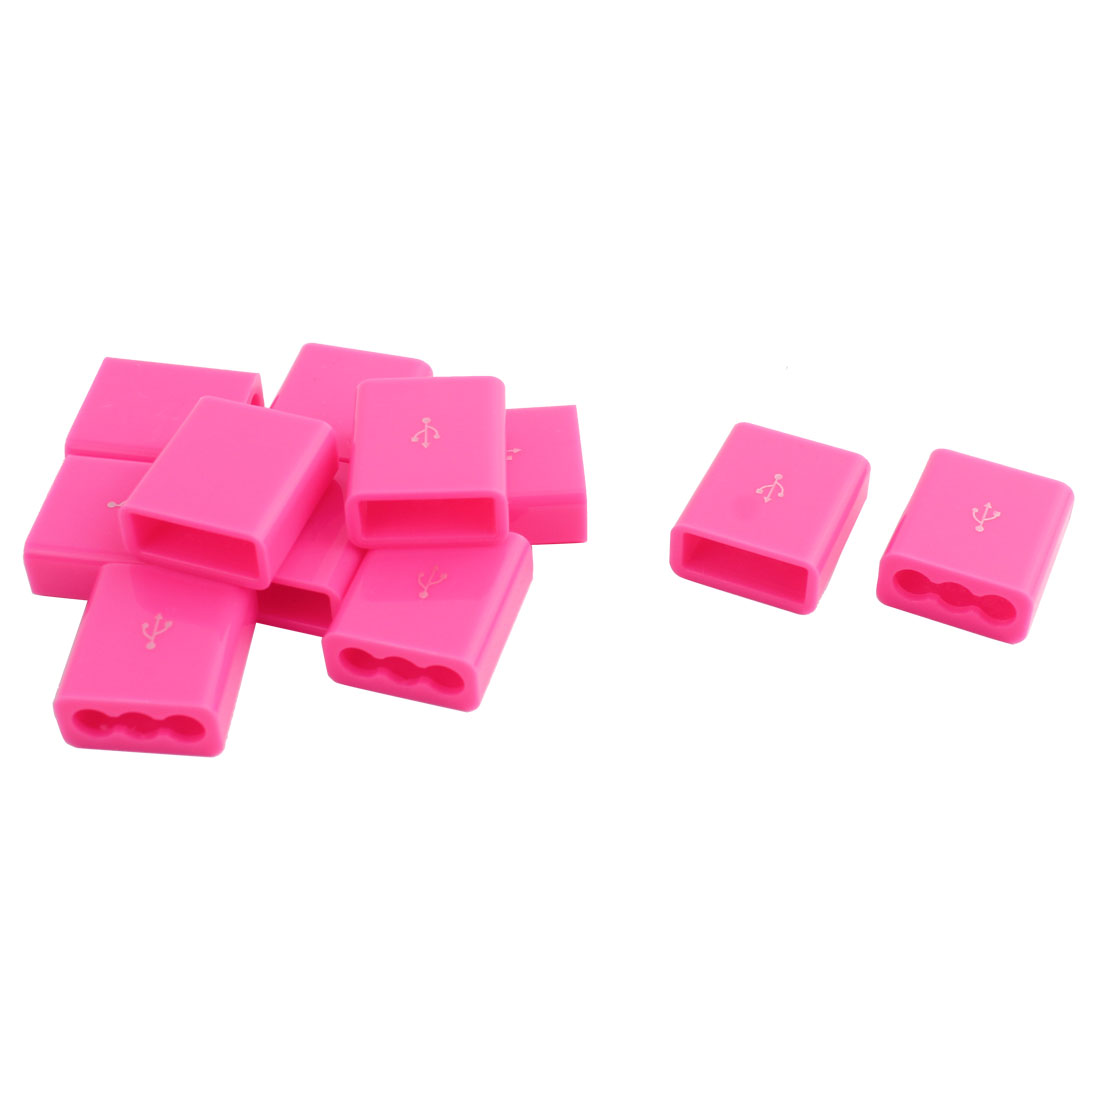 Plastic Round Edge USB Charger Cable Parts USB Linker Socket Port Shell Pink 16x15x6mm 11pcs